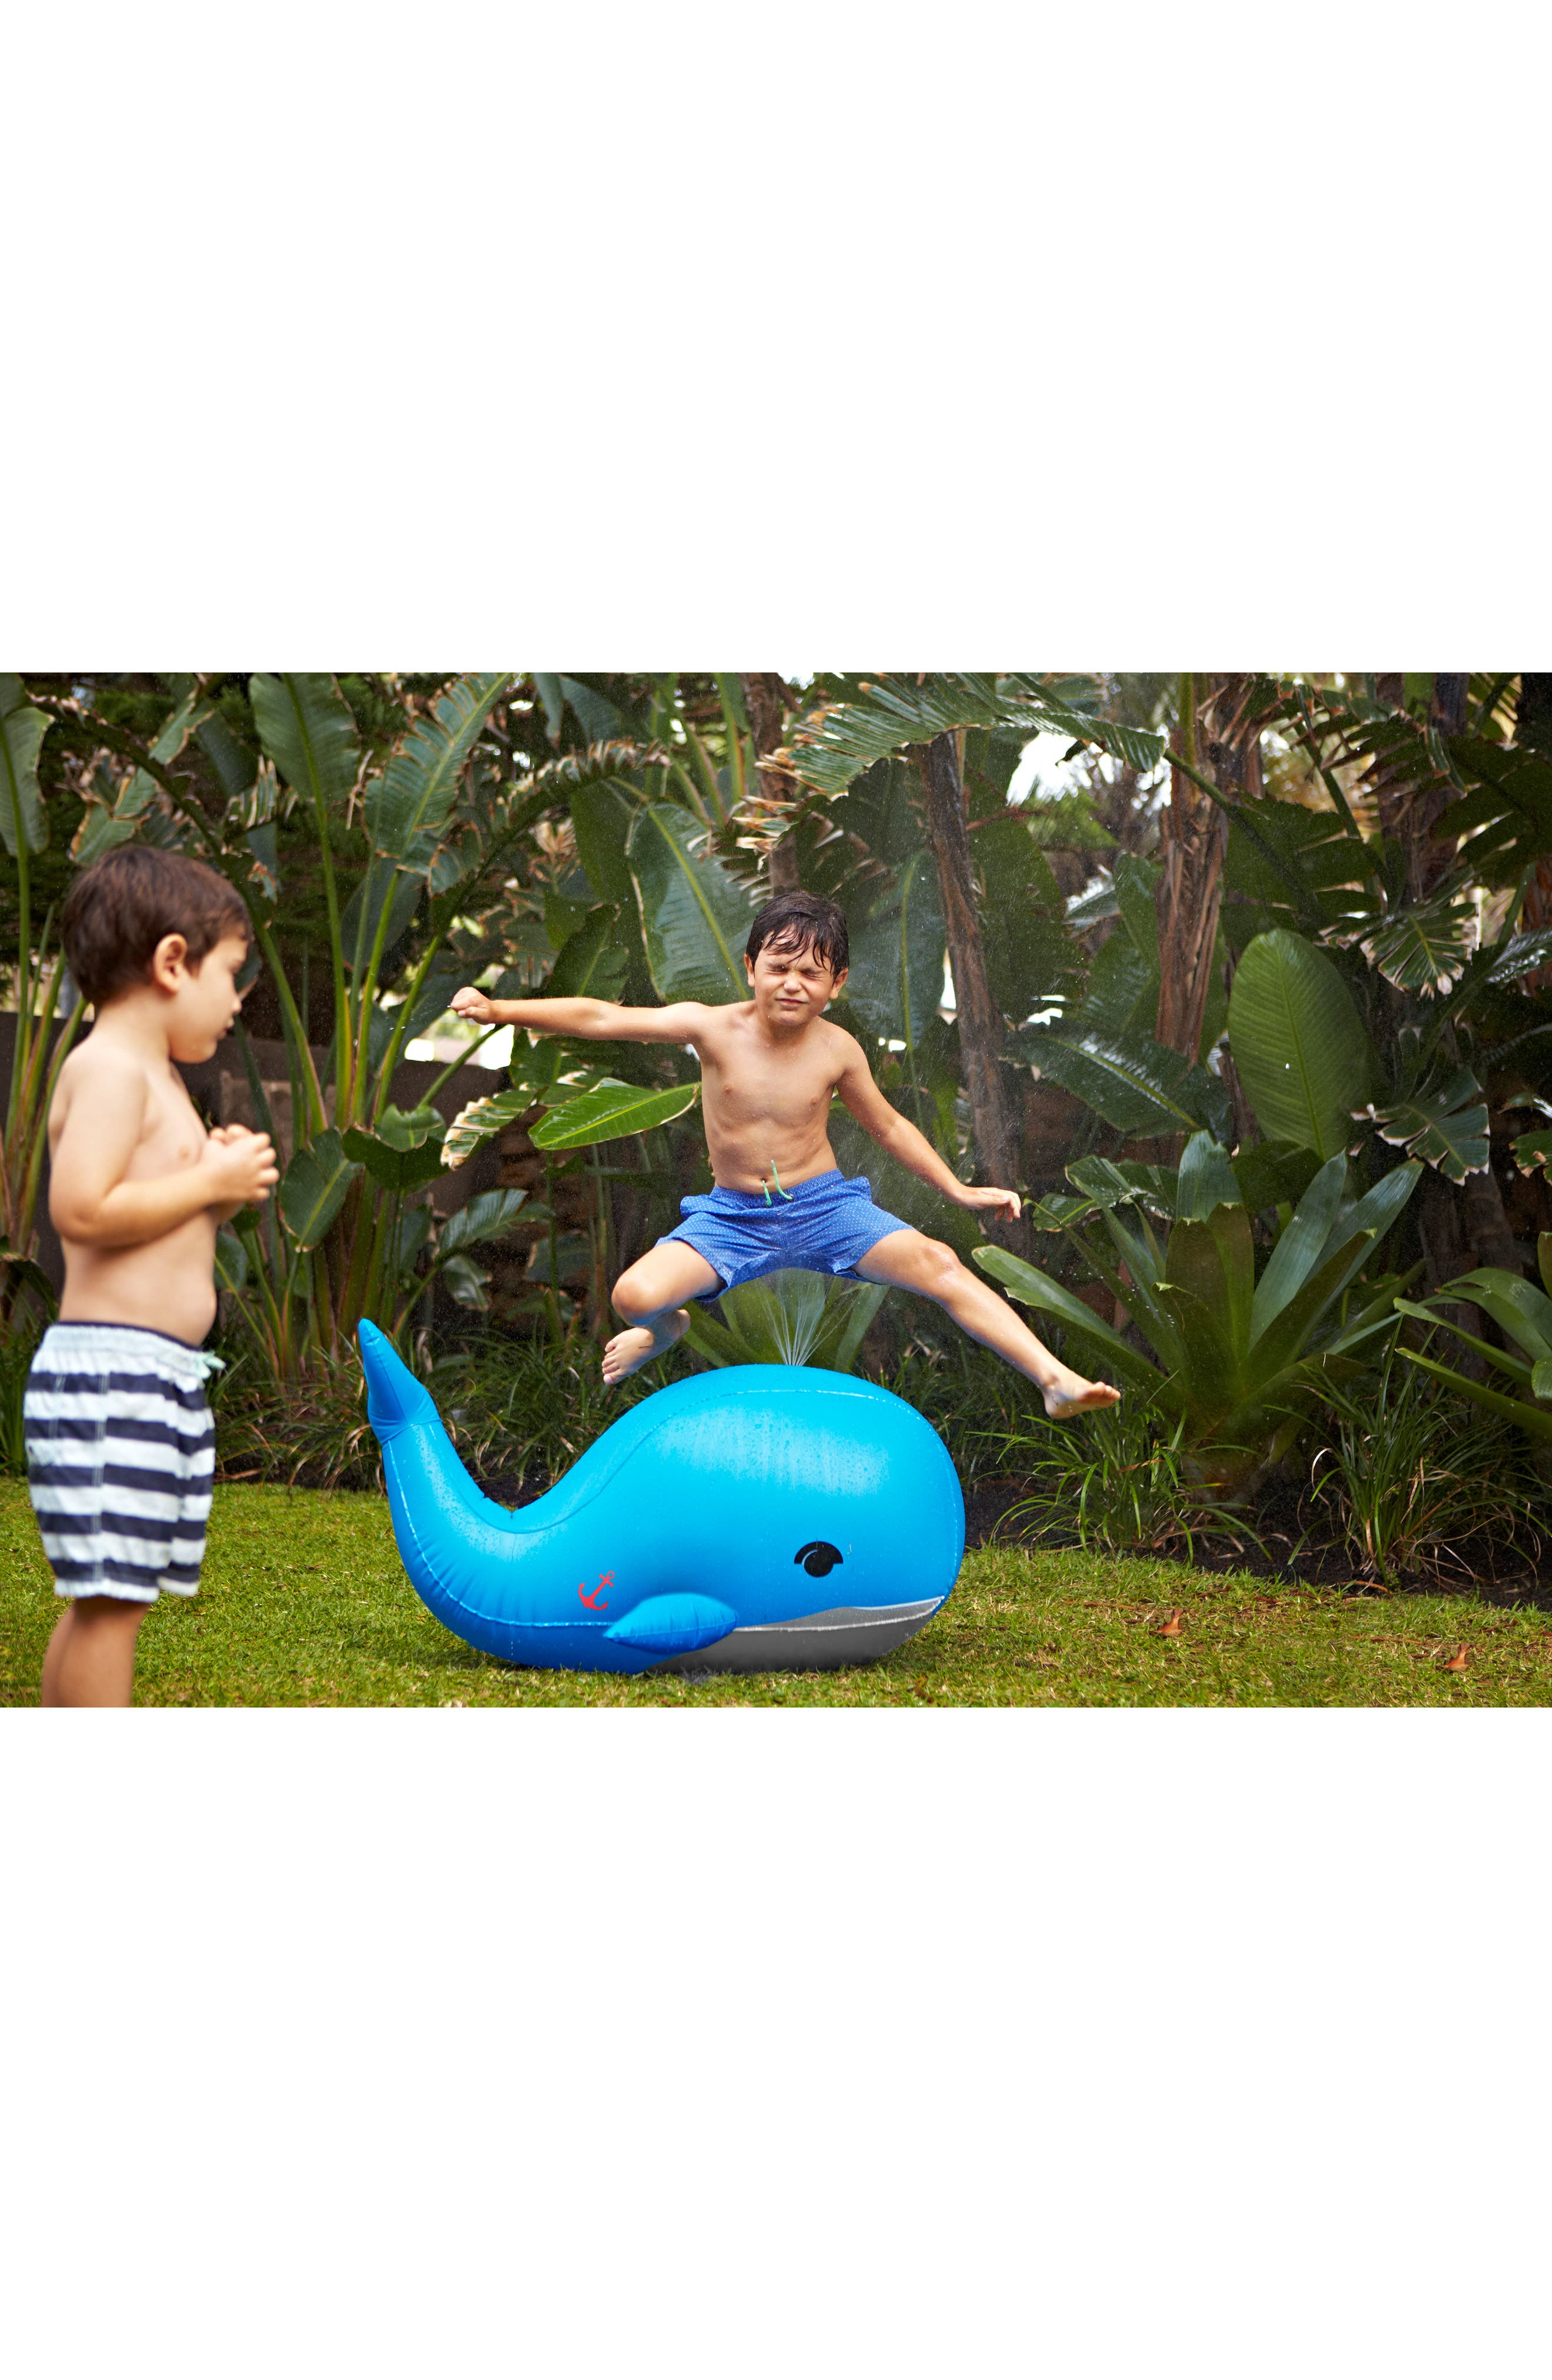 Moby Dick Inflatable Sprinkler,                             Alternate thumbnail 4, color,                             400